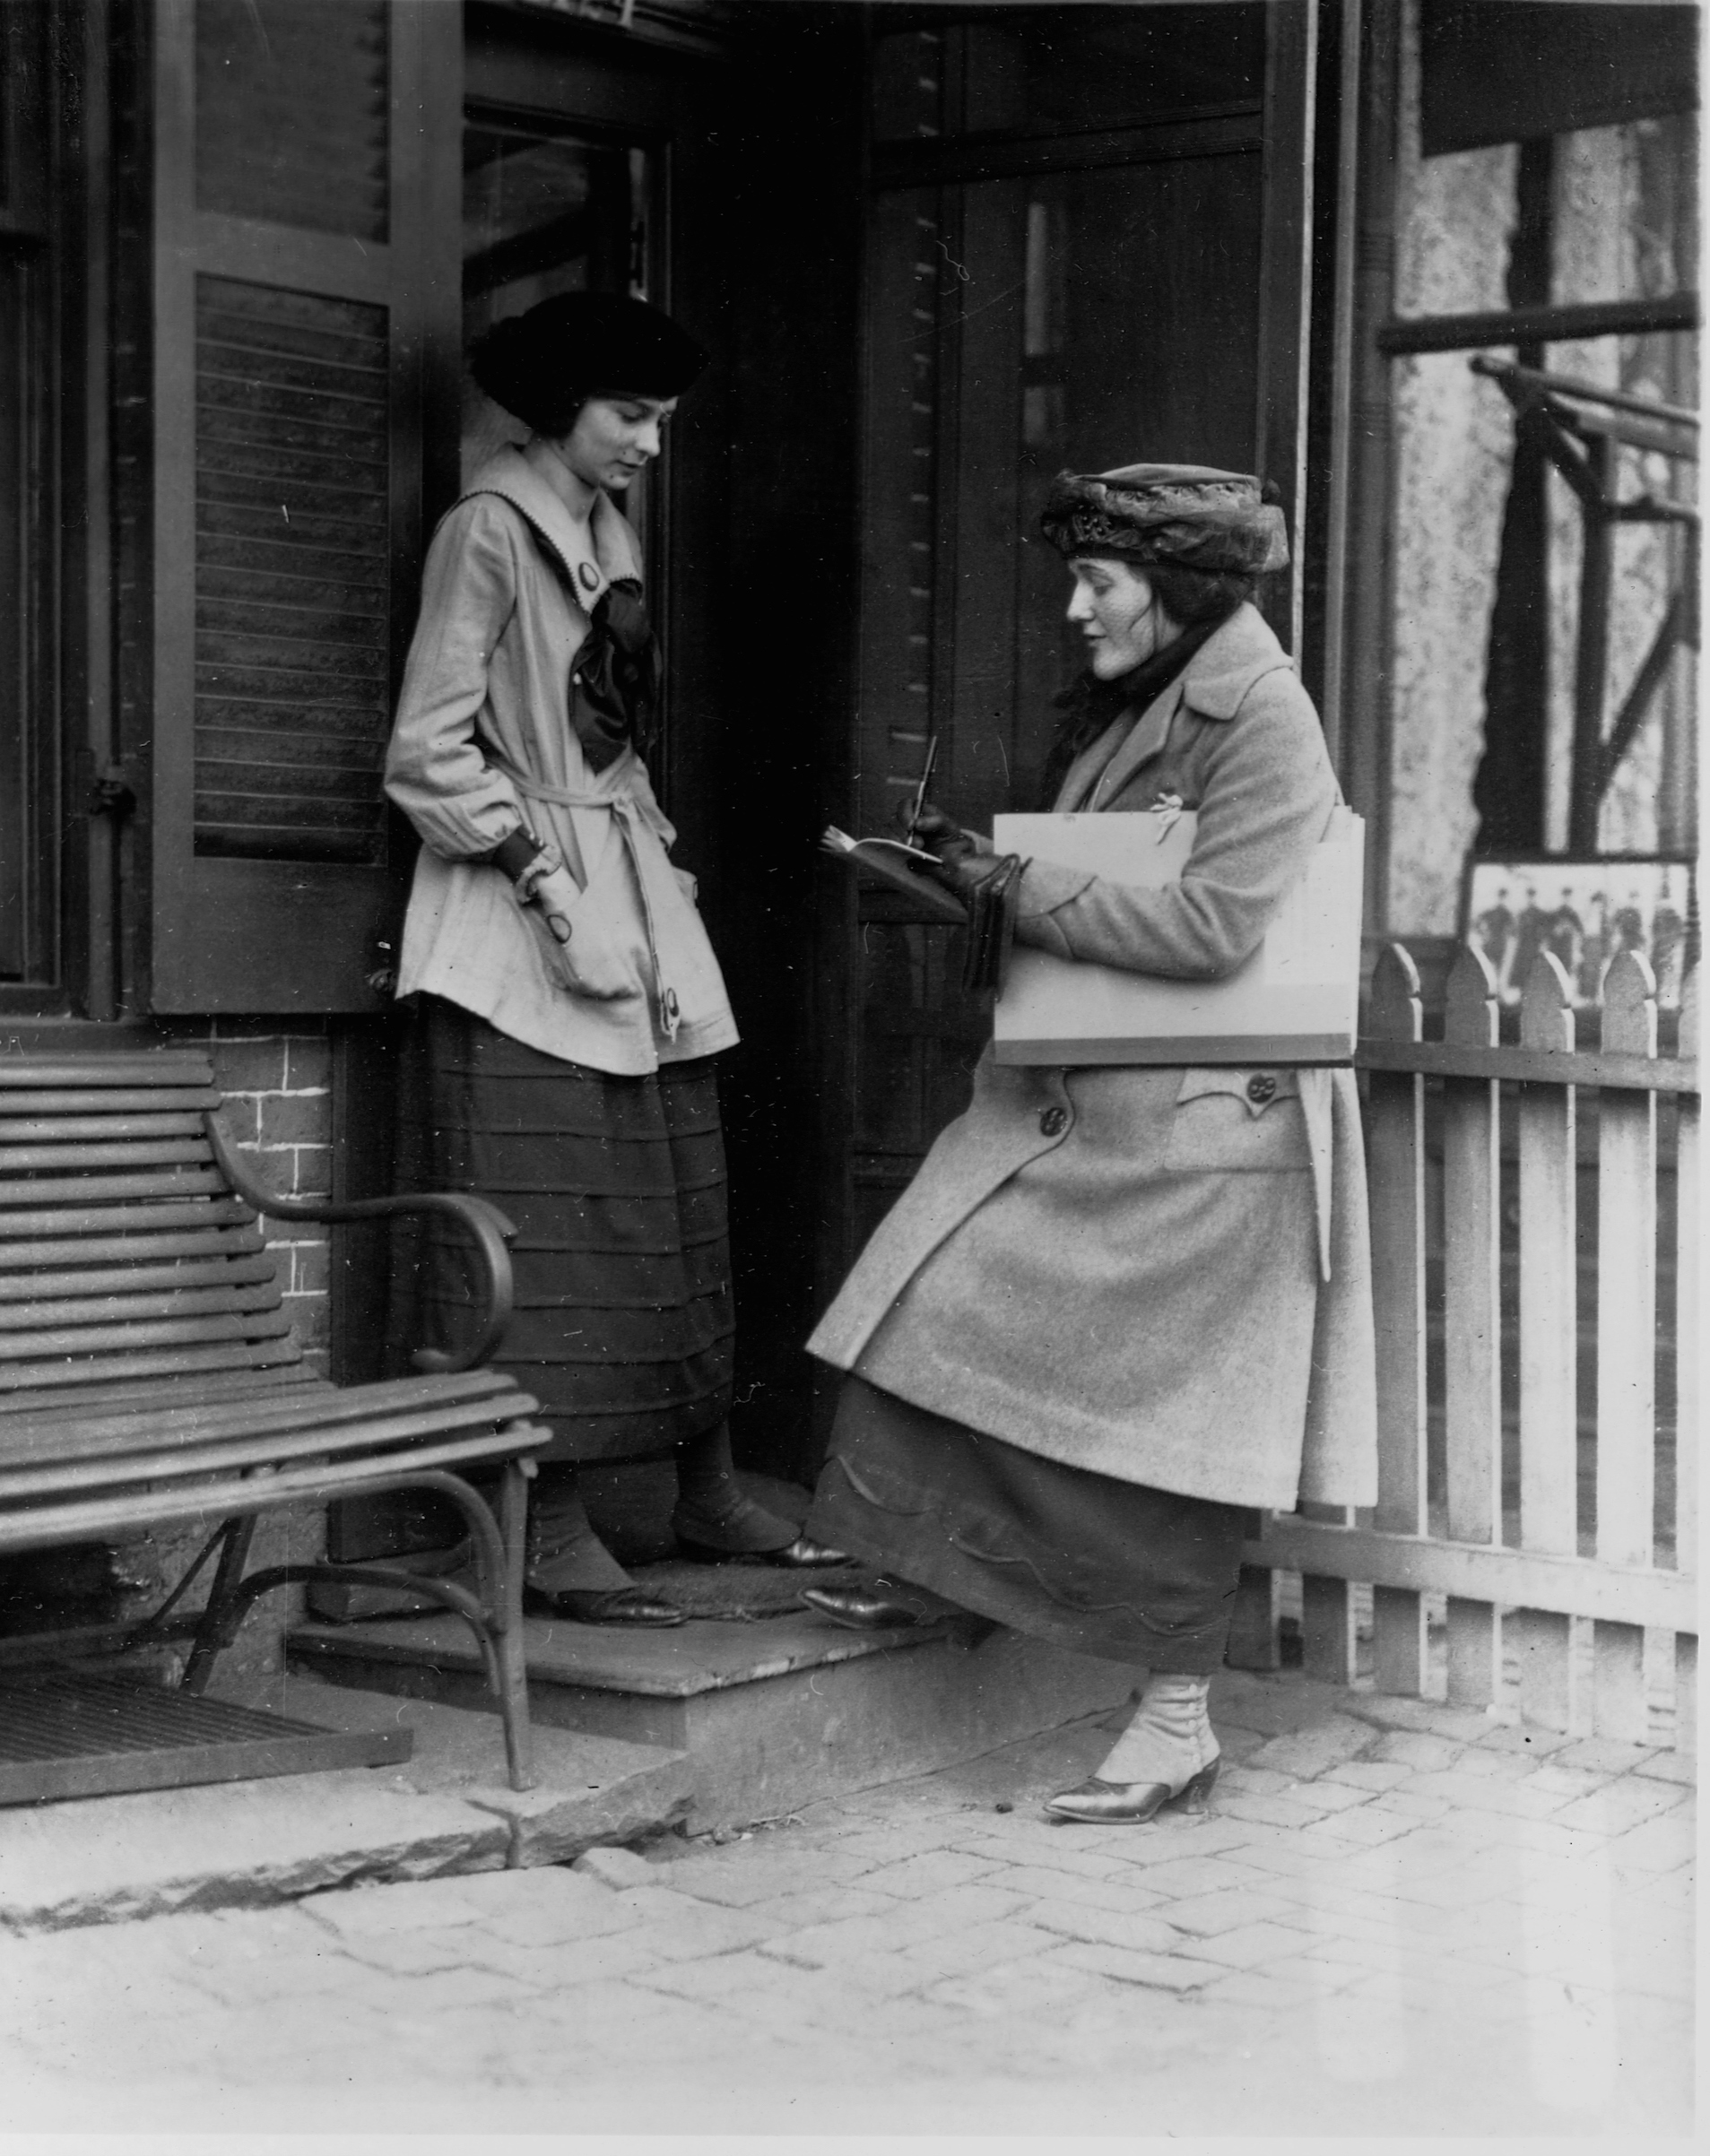 A Census taker asks questions of a woman at the door of her house, early 20th century.